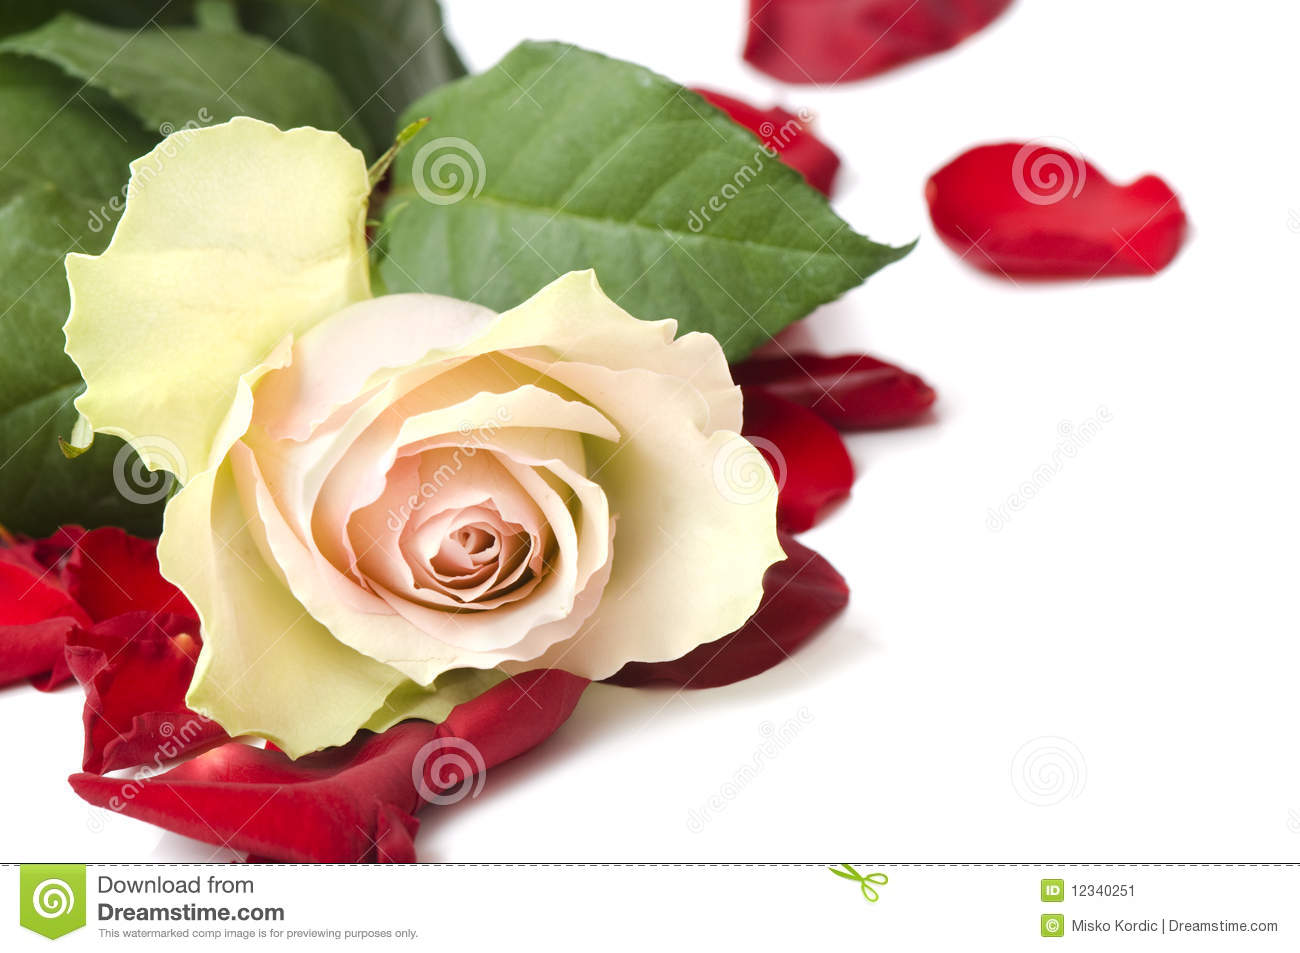 beautiful white rose for day valentine as gift stock image - image, Ideas